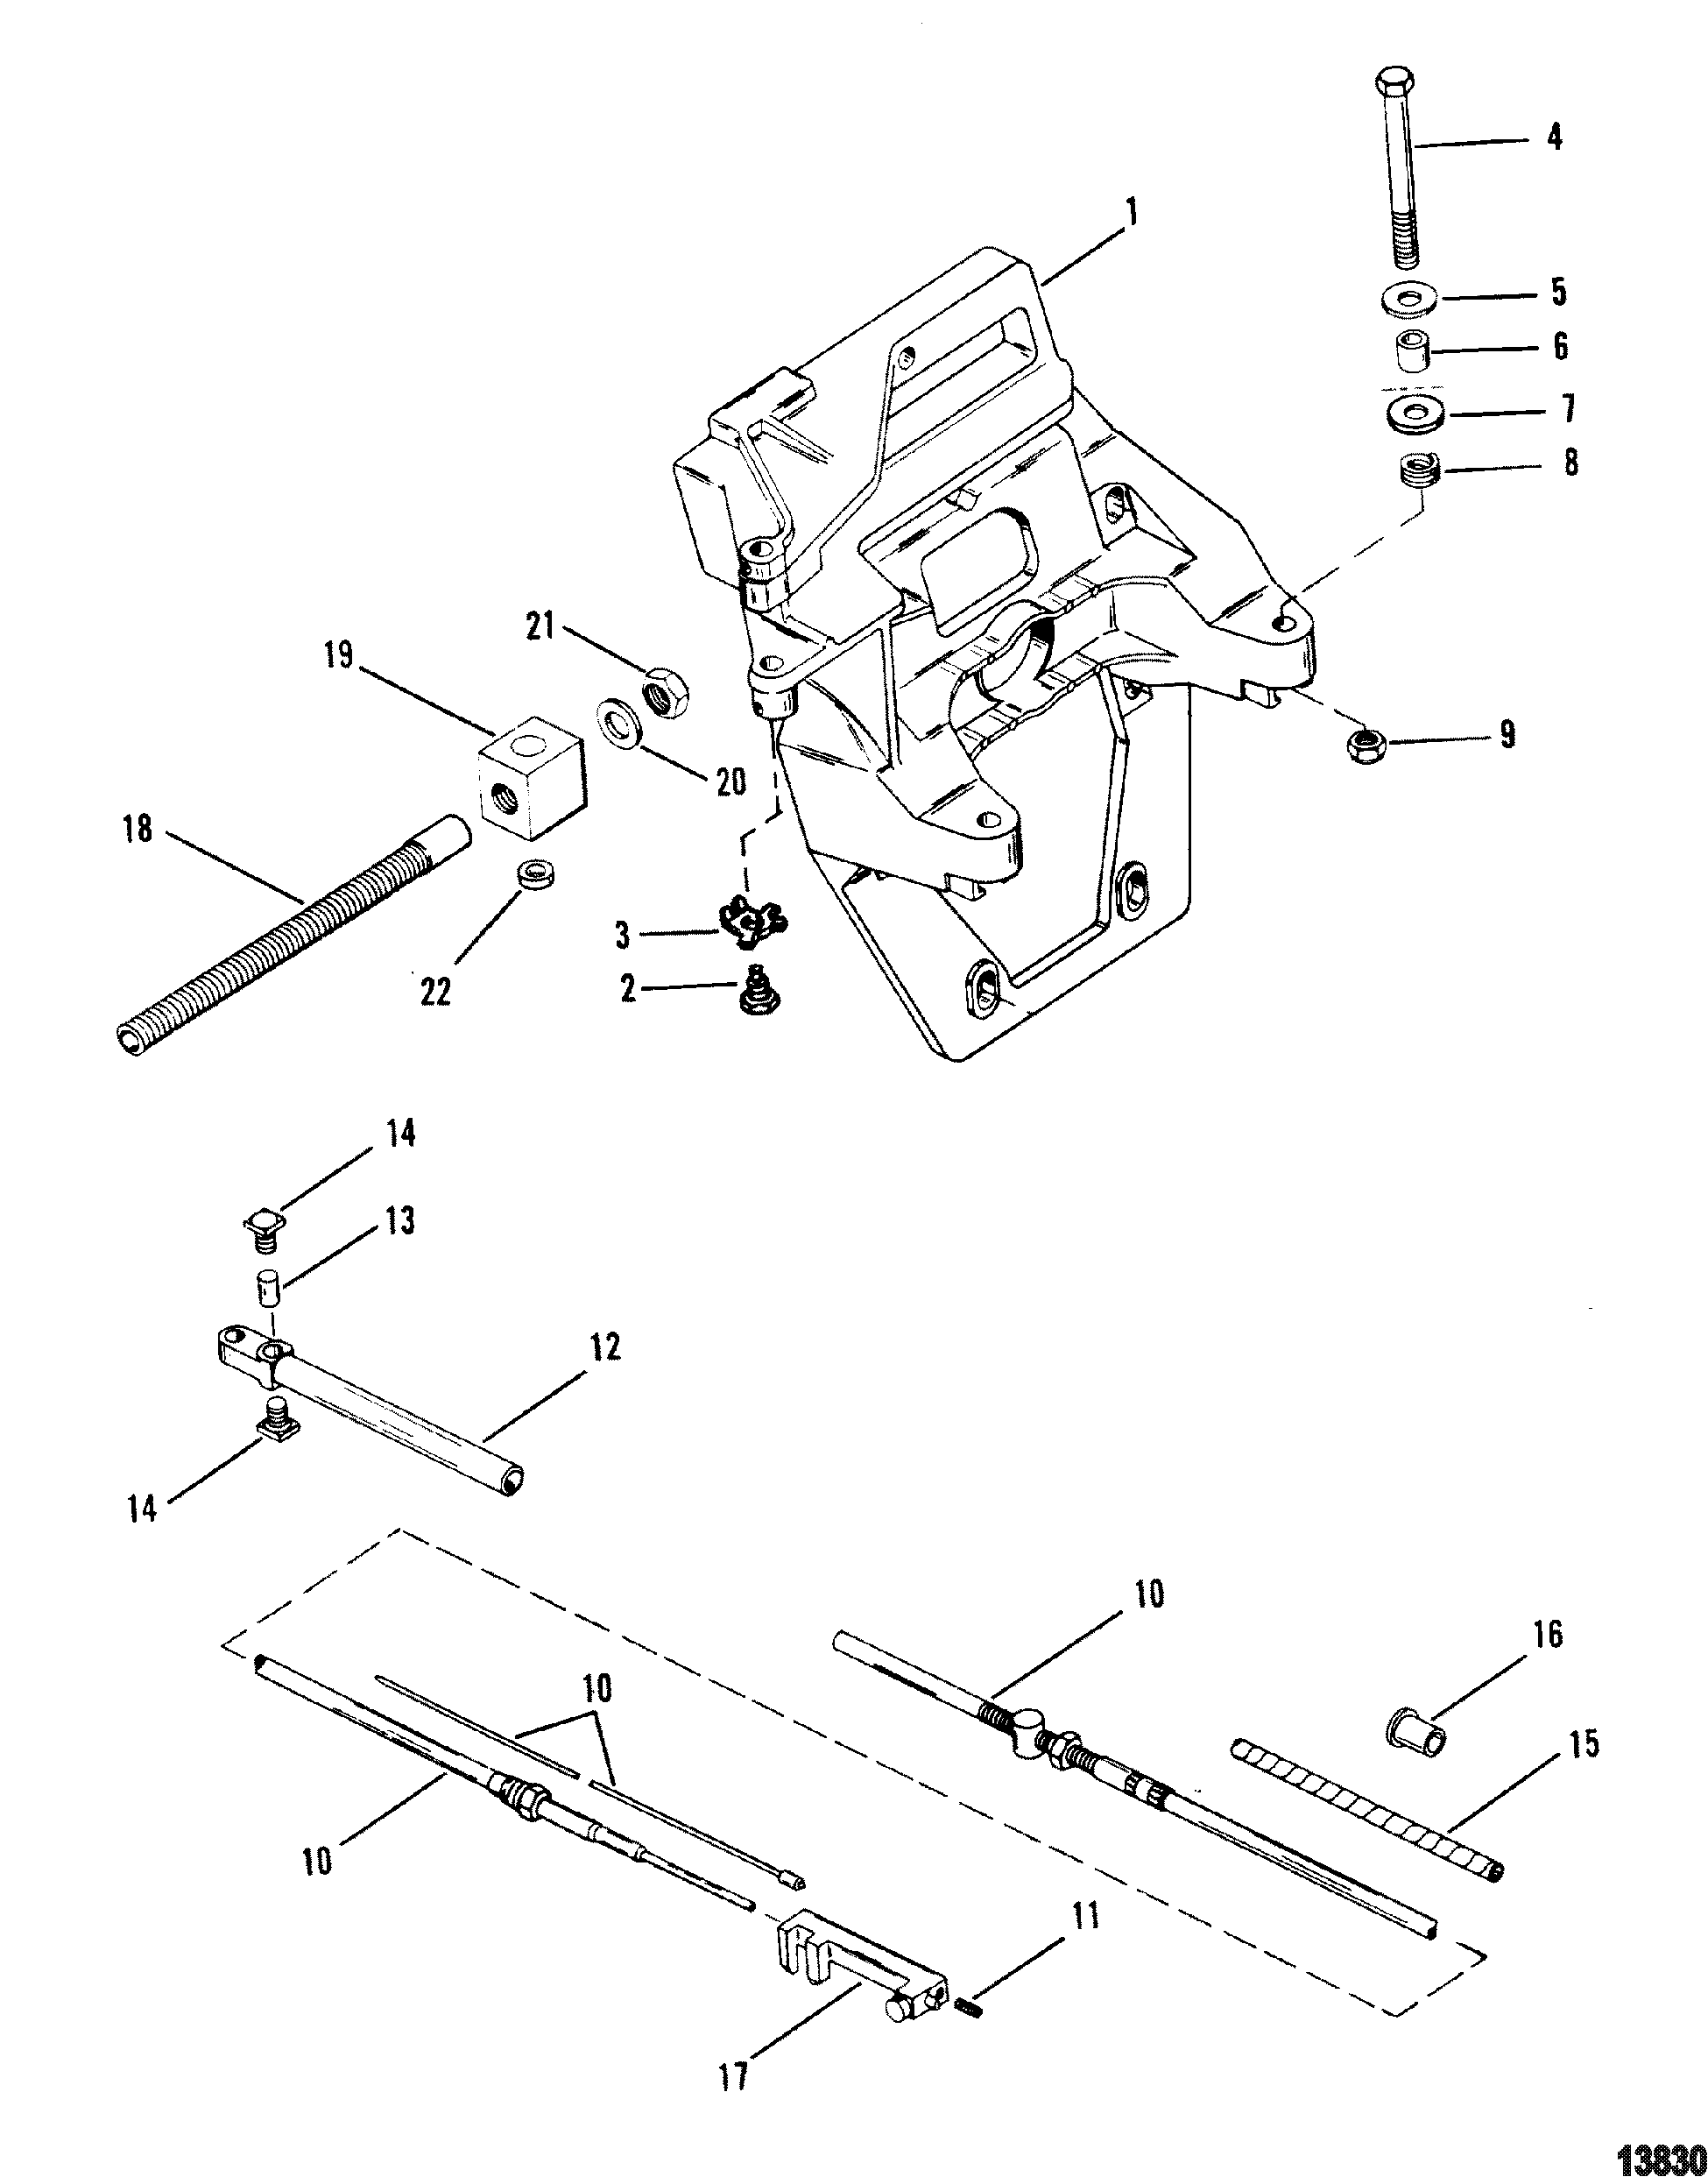 Transom Plate And Shift Cable For Mercruiser Alpha One Gen